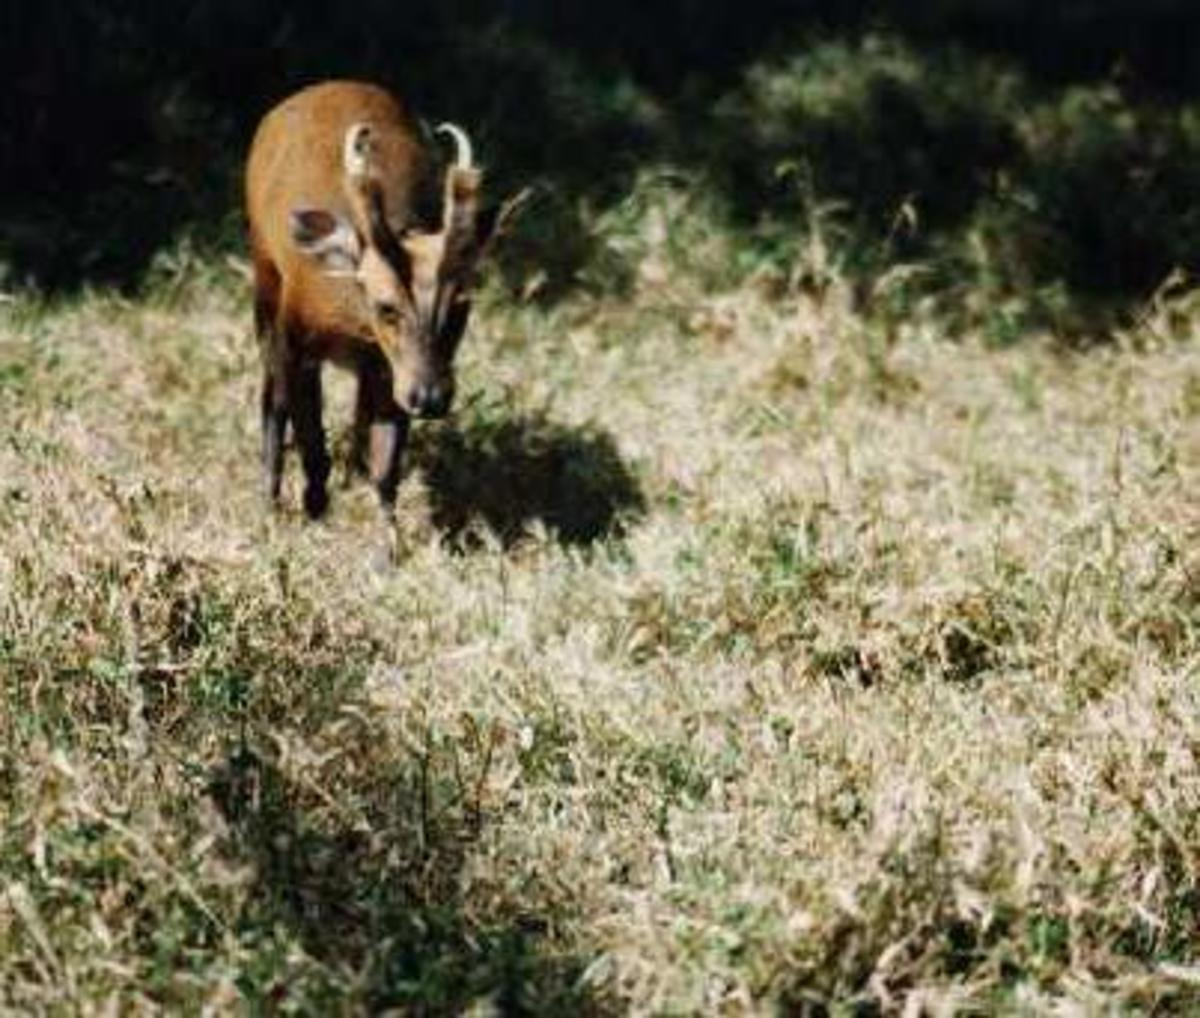 I took this picture, the most stolen on the net, of a barking deer at Margalla Hills National Park (1988).